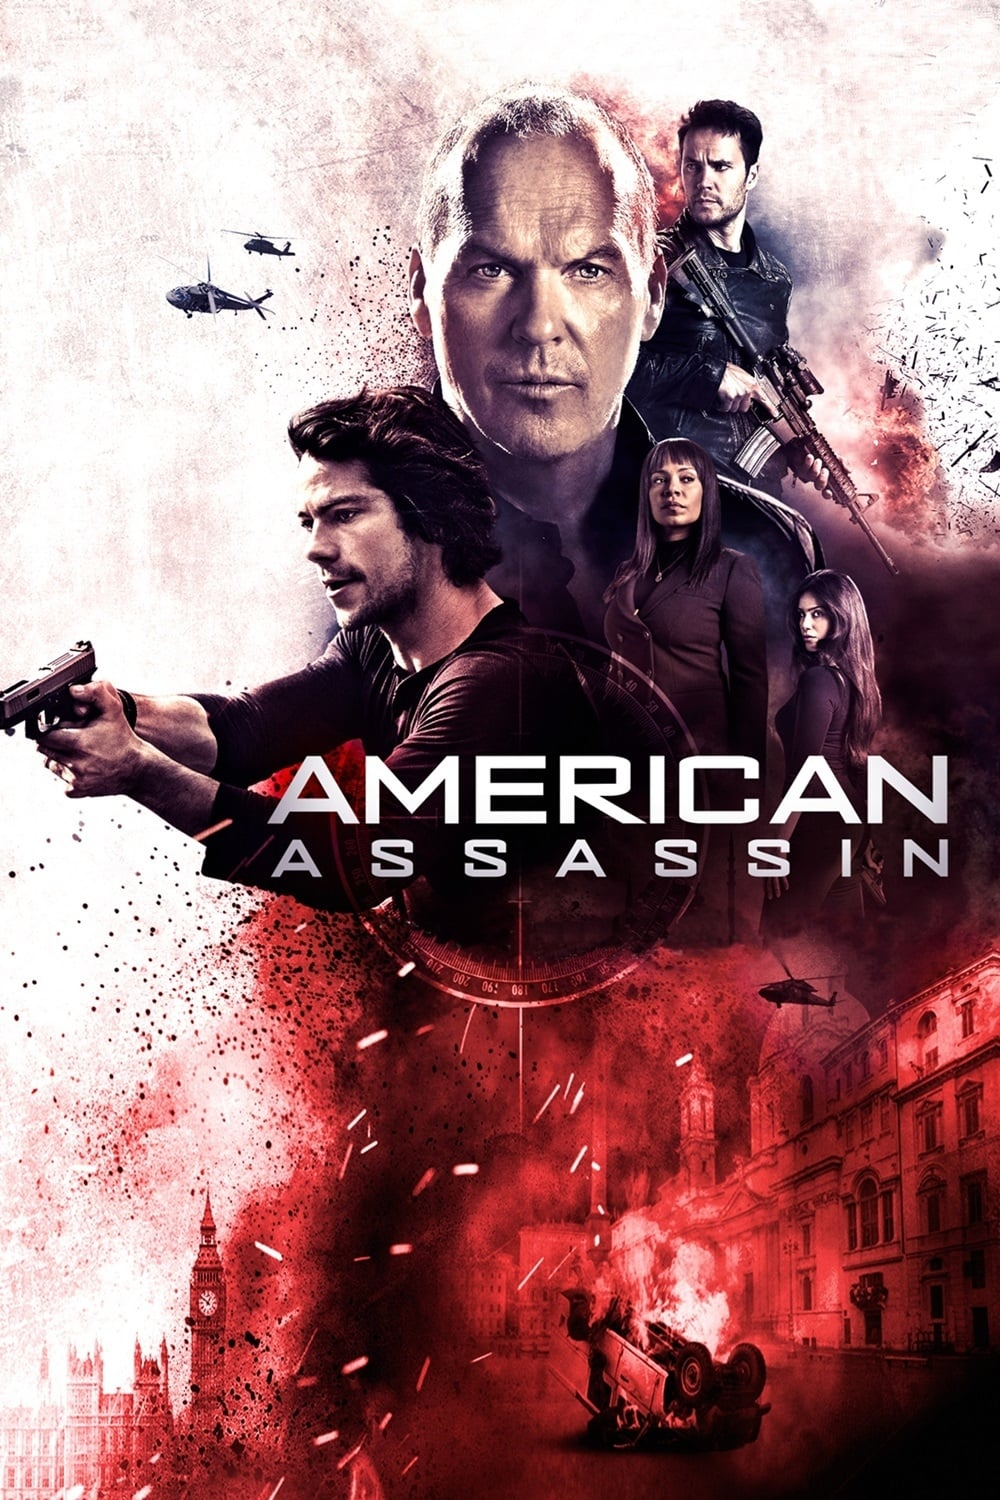 image for American Assassin